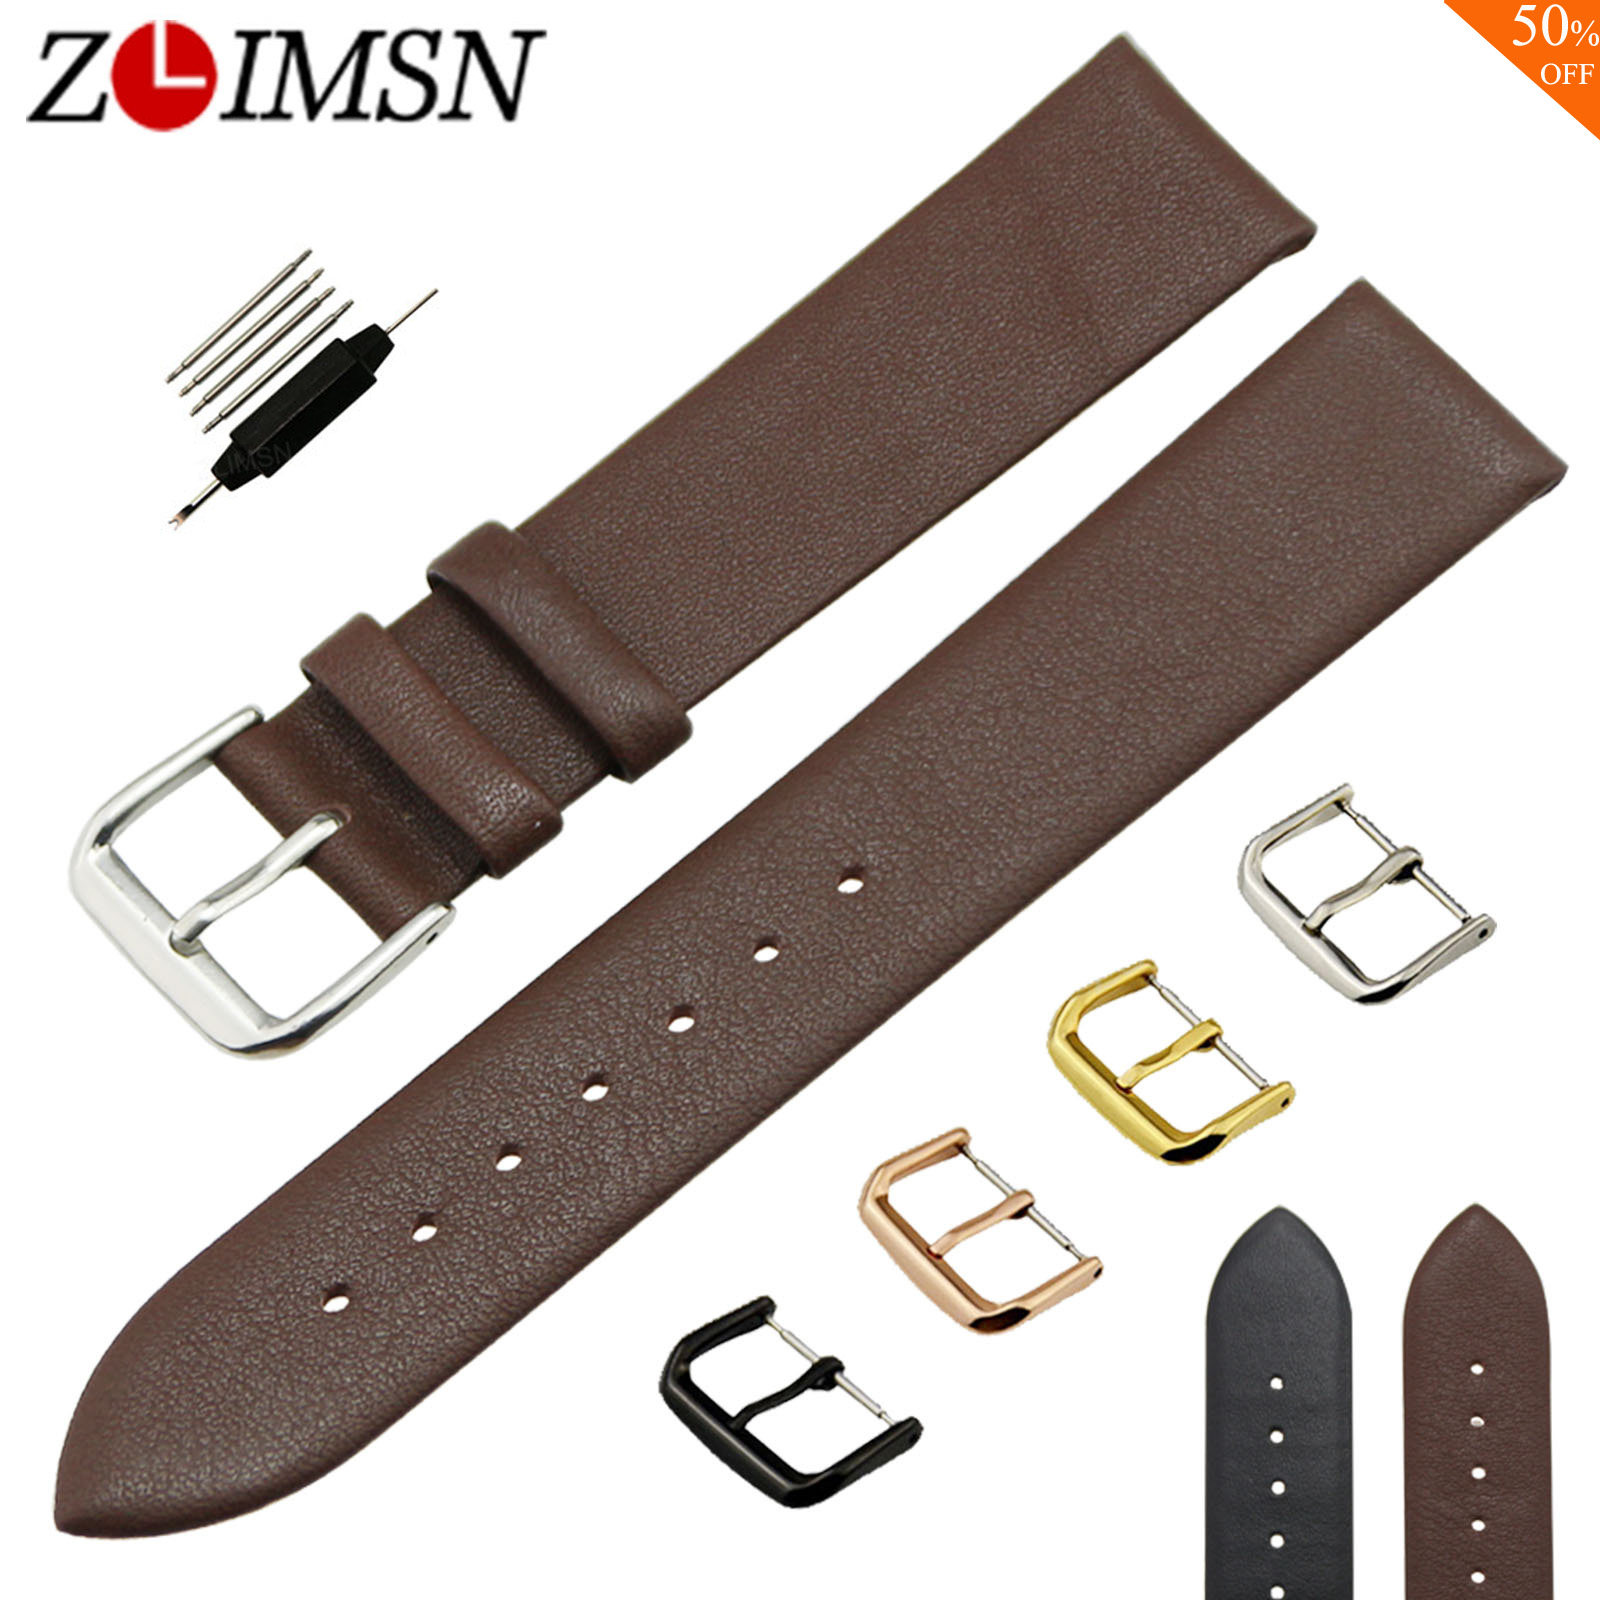 ZLIMSN Brown Genuine Leather Watchbands 18 20 22mm Thin Smooth Watch Strap Belt for Ladies Men's Watches Stainless Steel Buckle zlimsn alligator leather watch bands strap watches accessories 20 22mm black brown genuine leather watchbands butterfly buckle